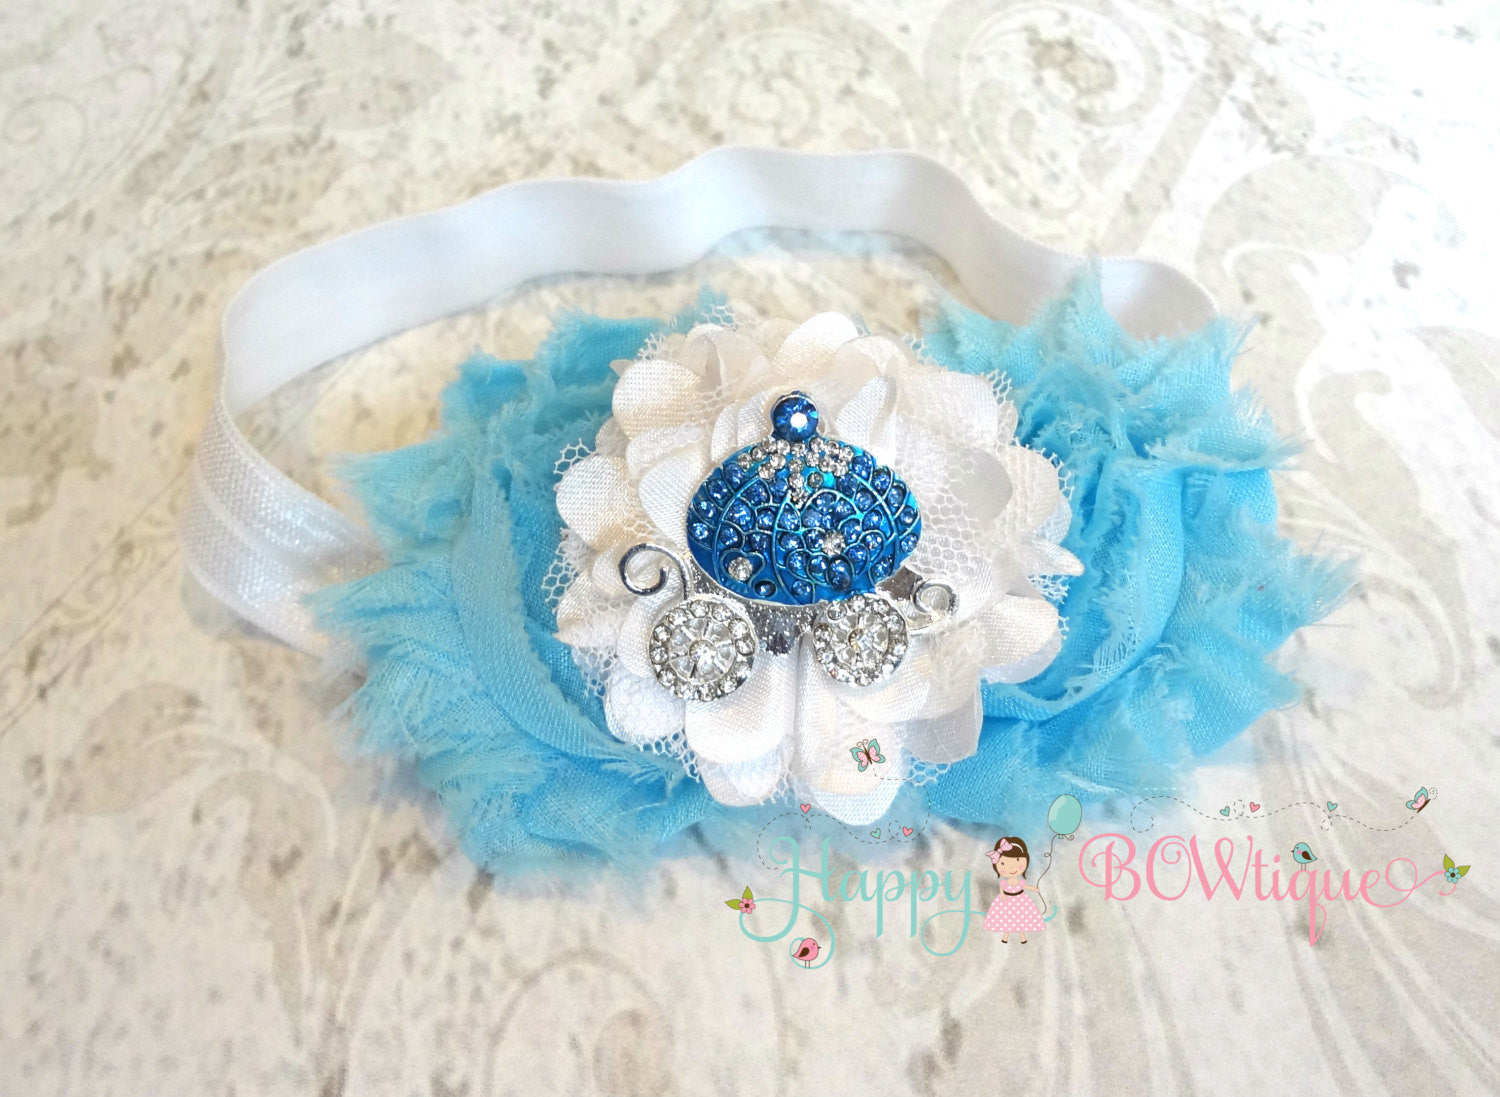 Princess Tiara Headband - Happy BOWtique - children's clothing, Baby Girl clothing